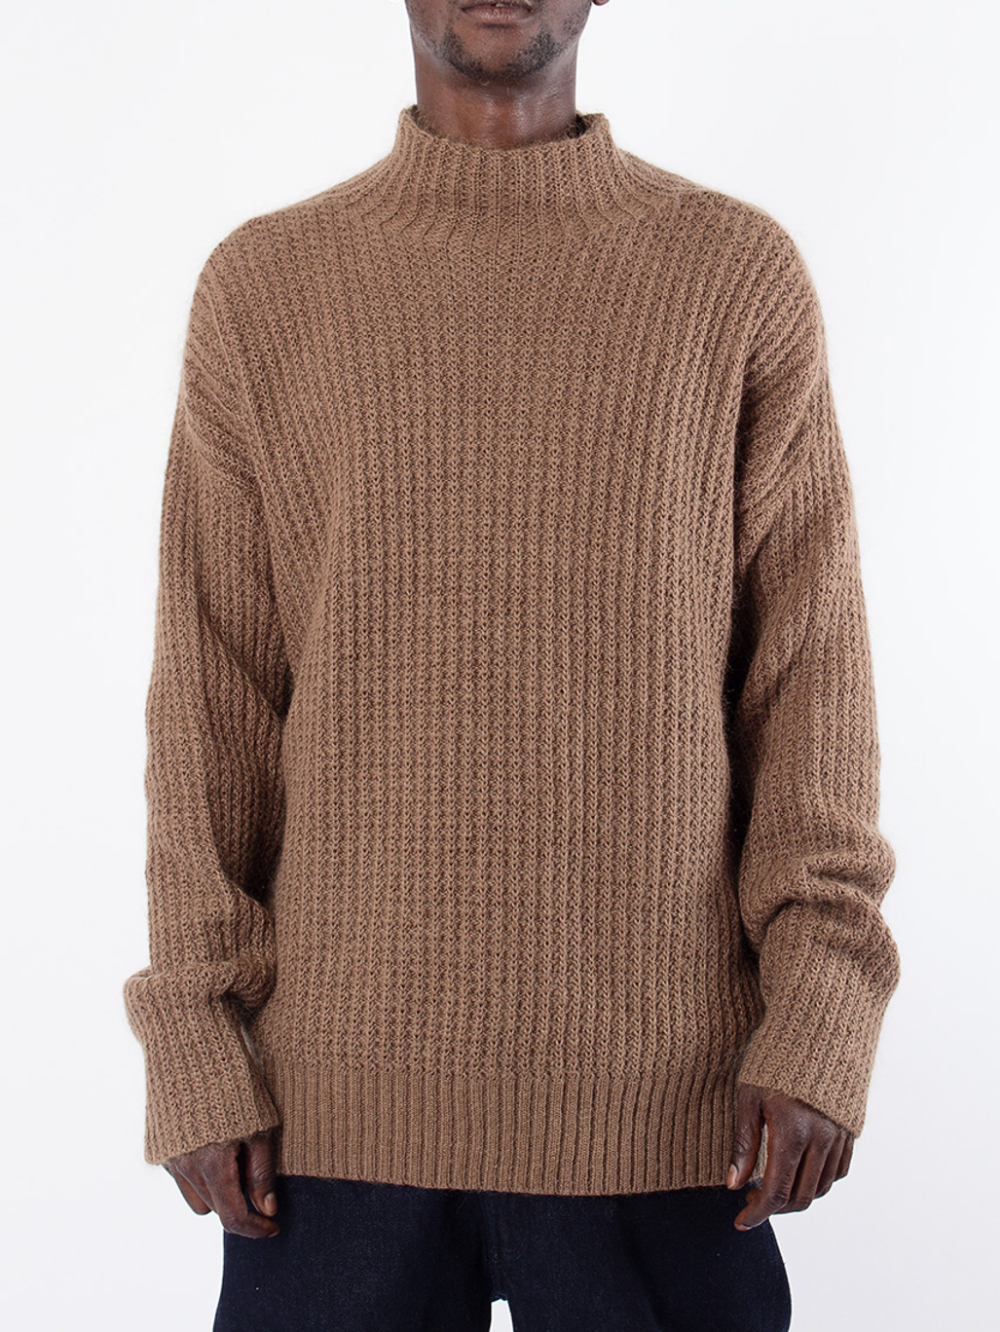 Made Knit Olive Adnym In 2020 Knitwear Men Scandinavian Fashion Mens Outfits